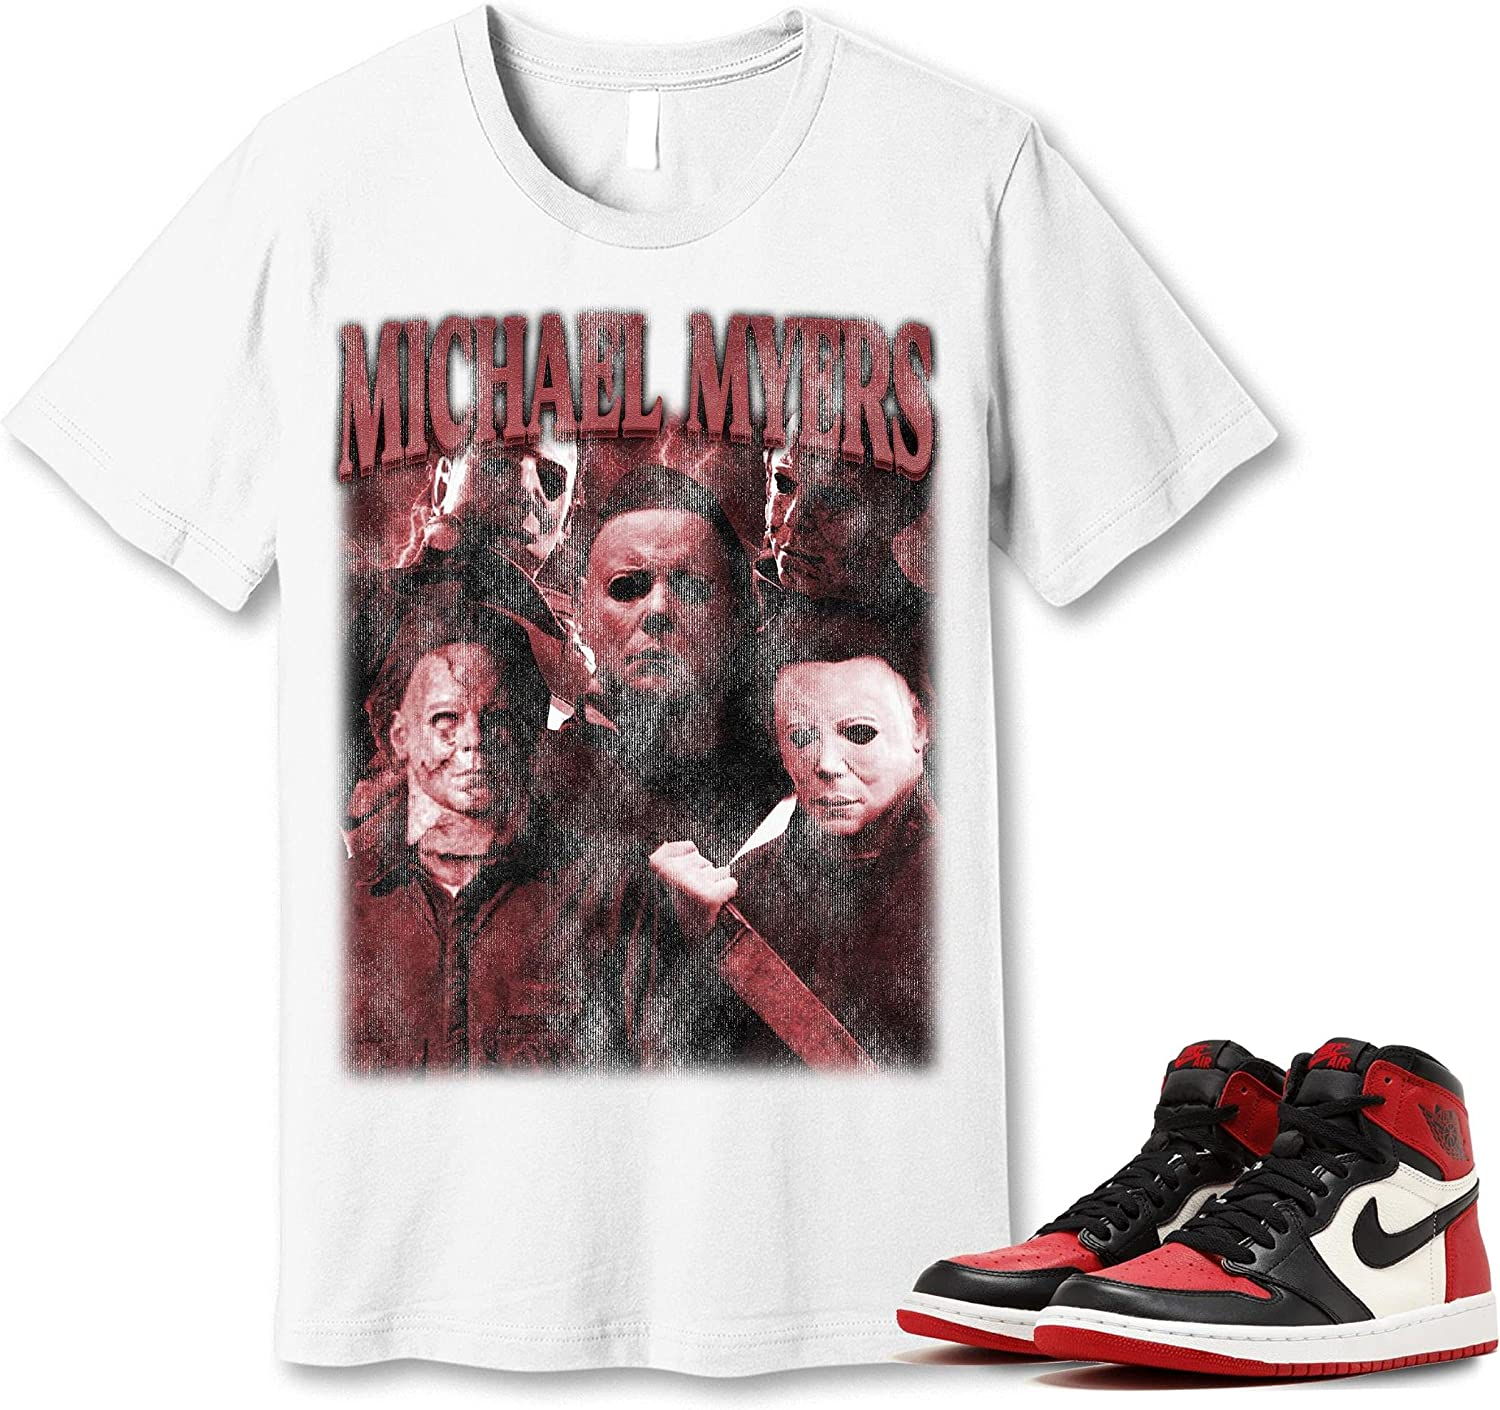 #Michael #Myer T-Shirt to Limited time sale Match Jordan Toe Sneaker Snkrs 1 At the price of surprise Bred